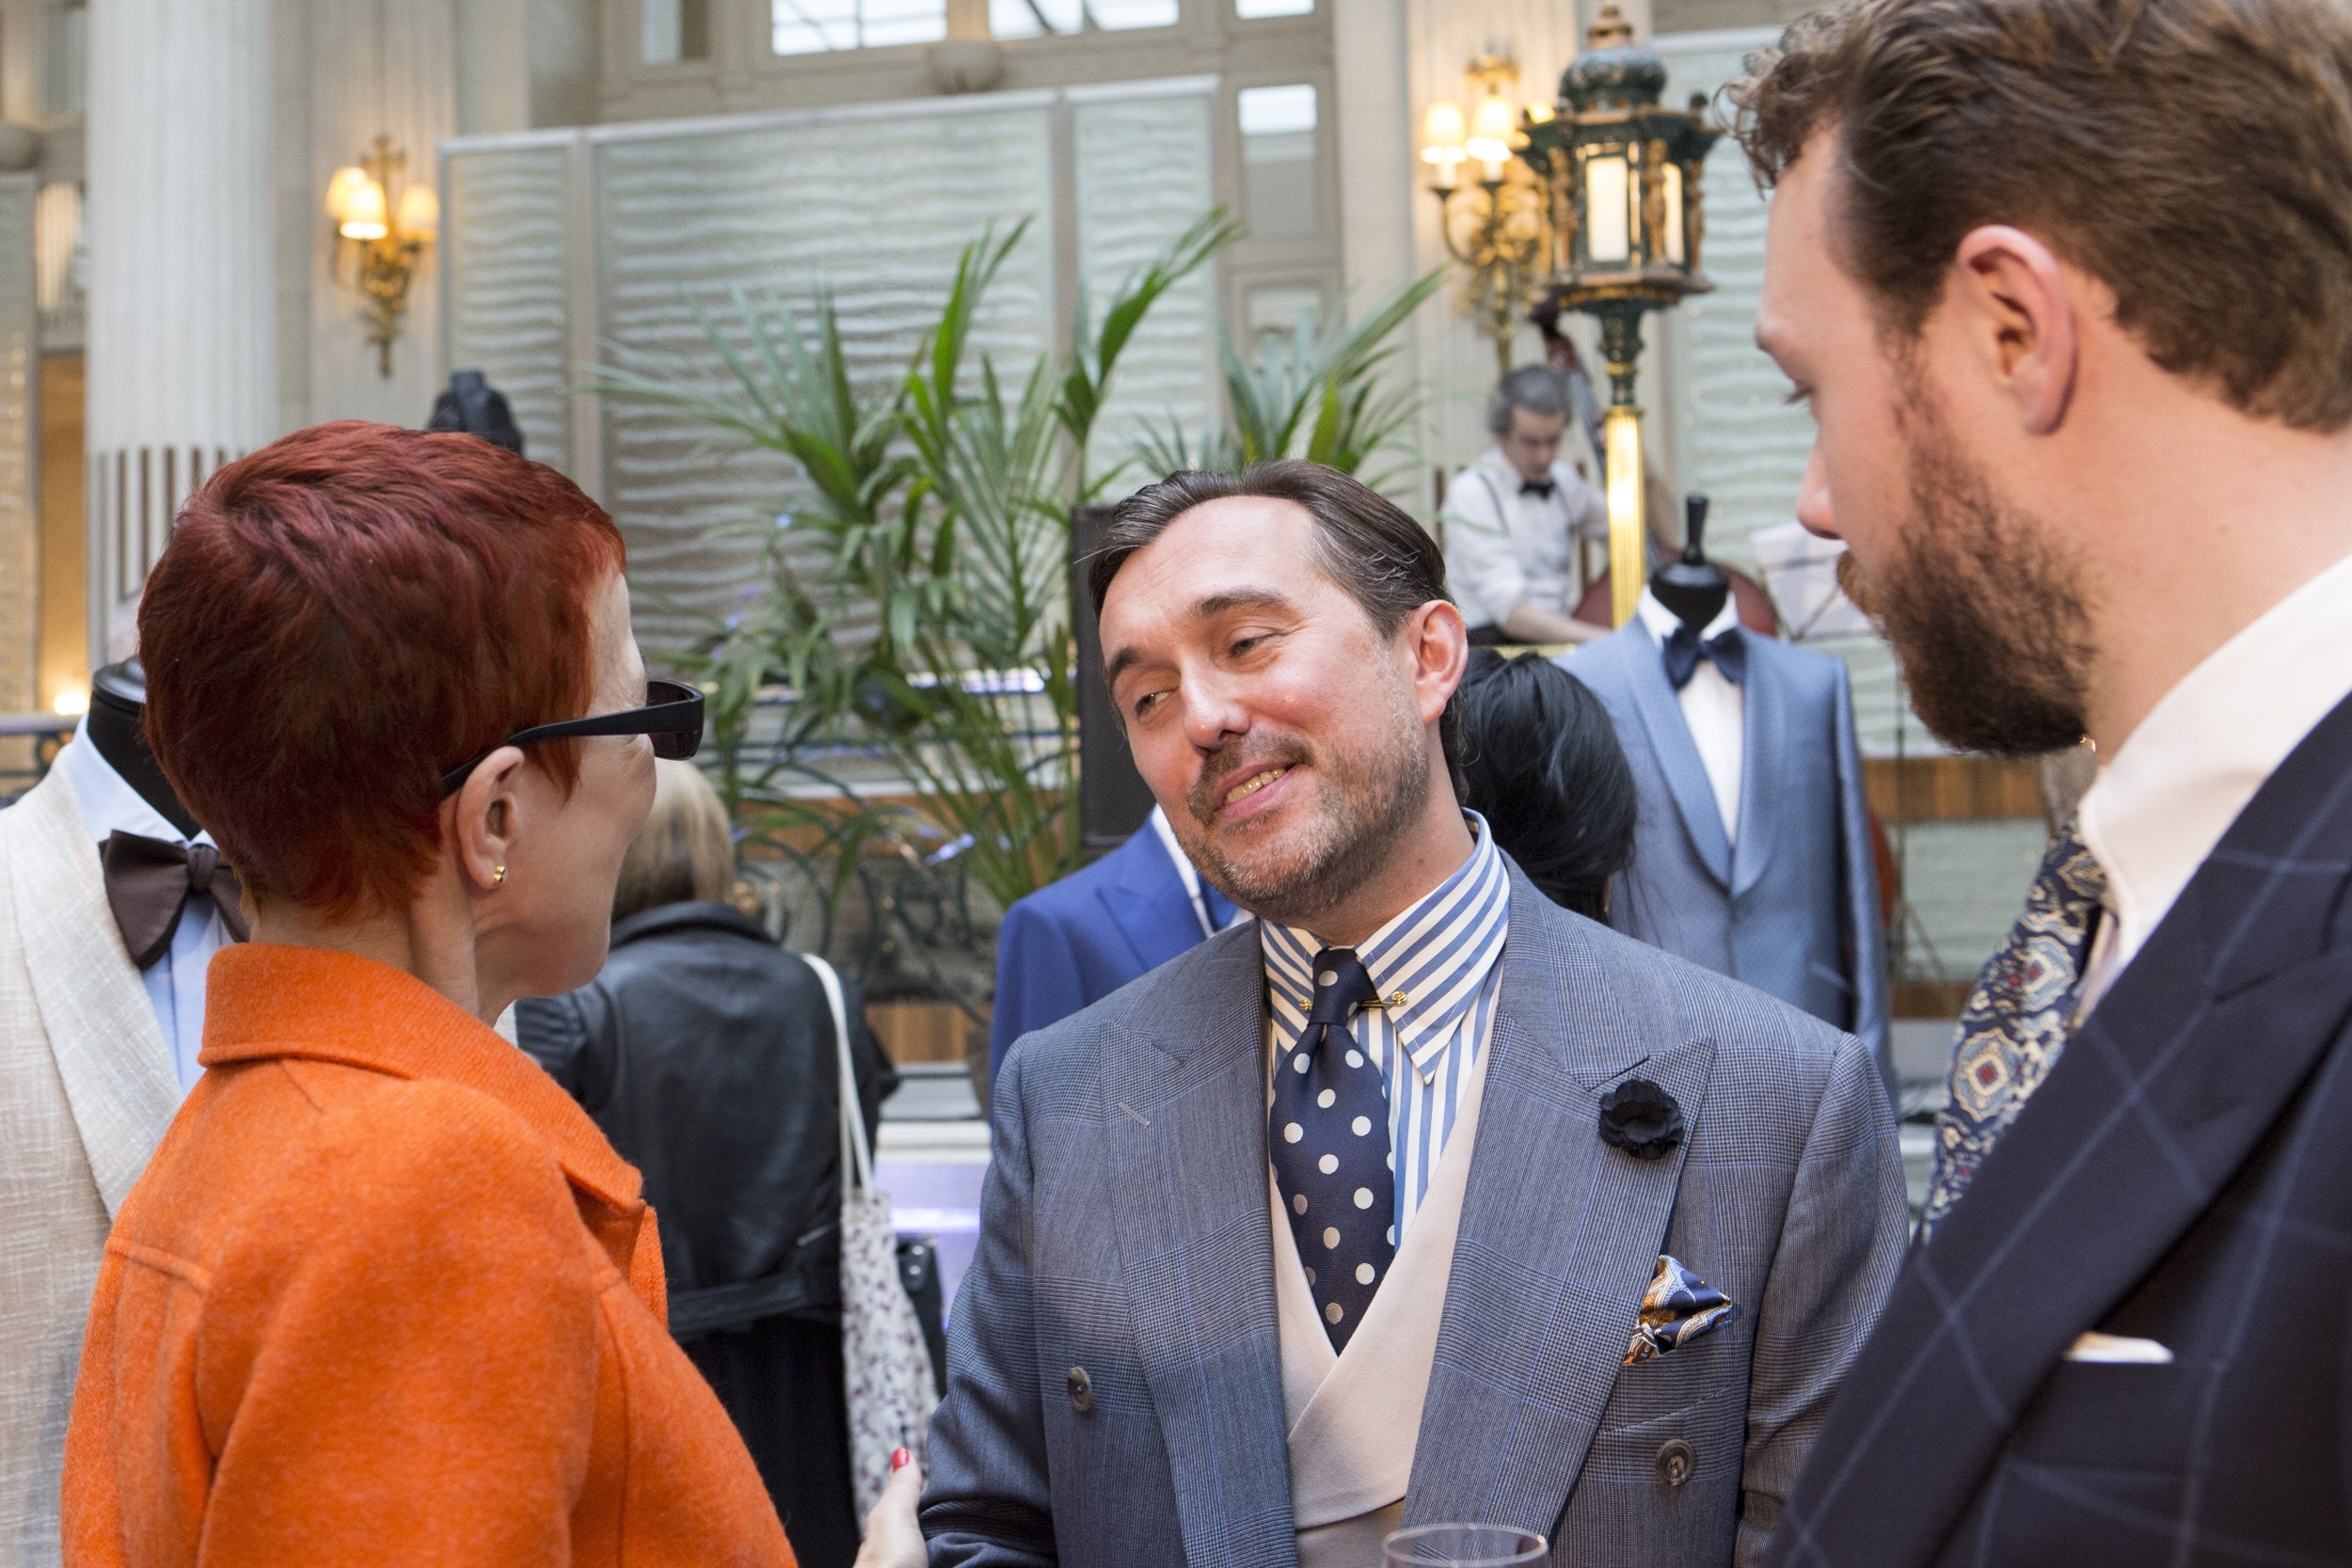 Chester Barrie's creative and buying manager Christopher Modoo